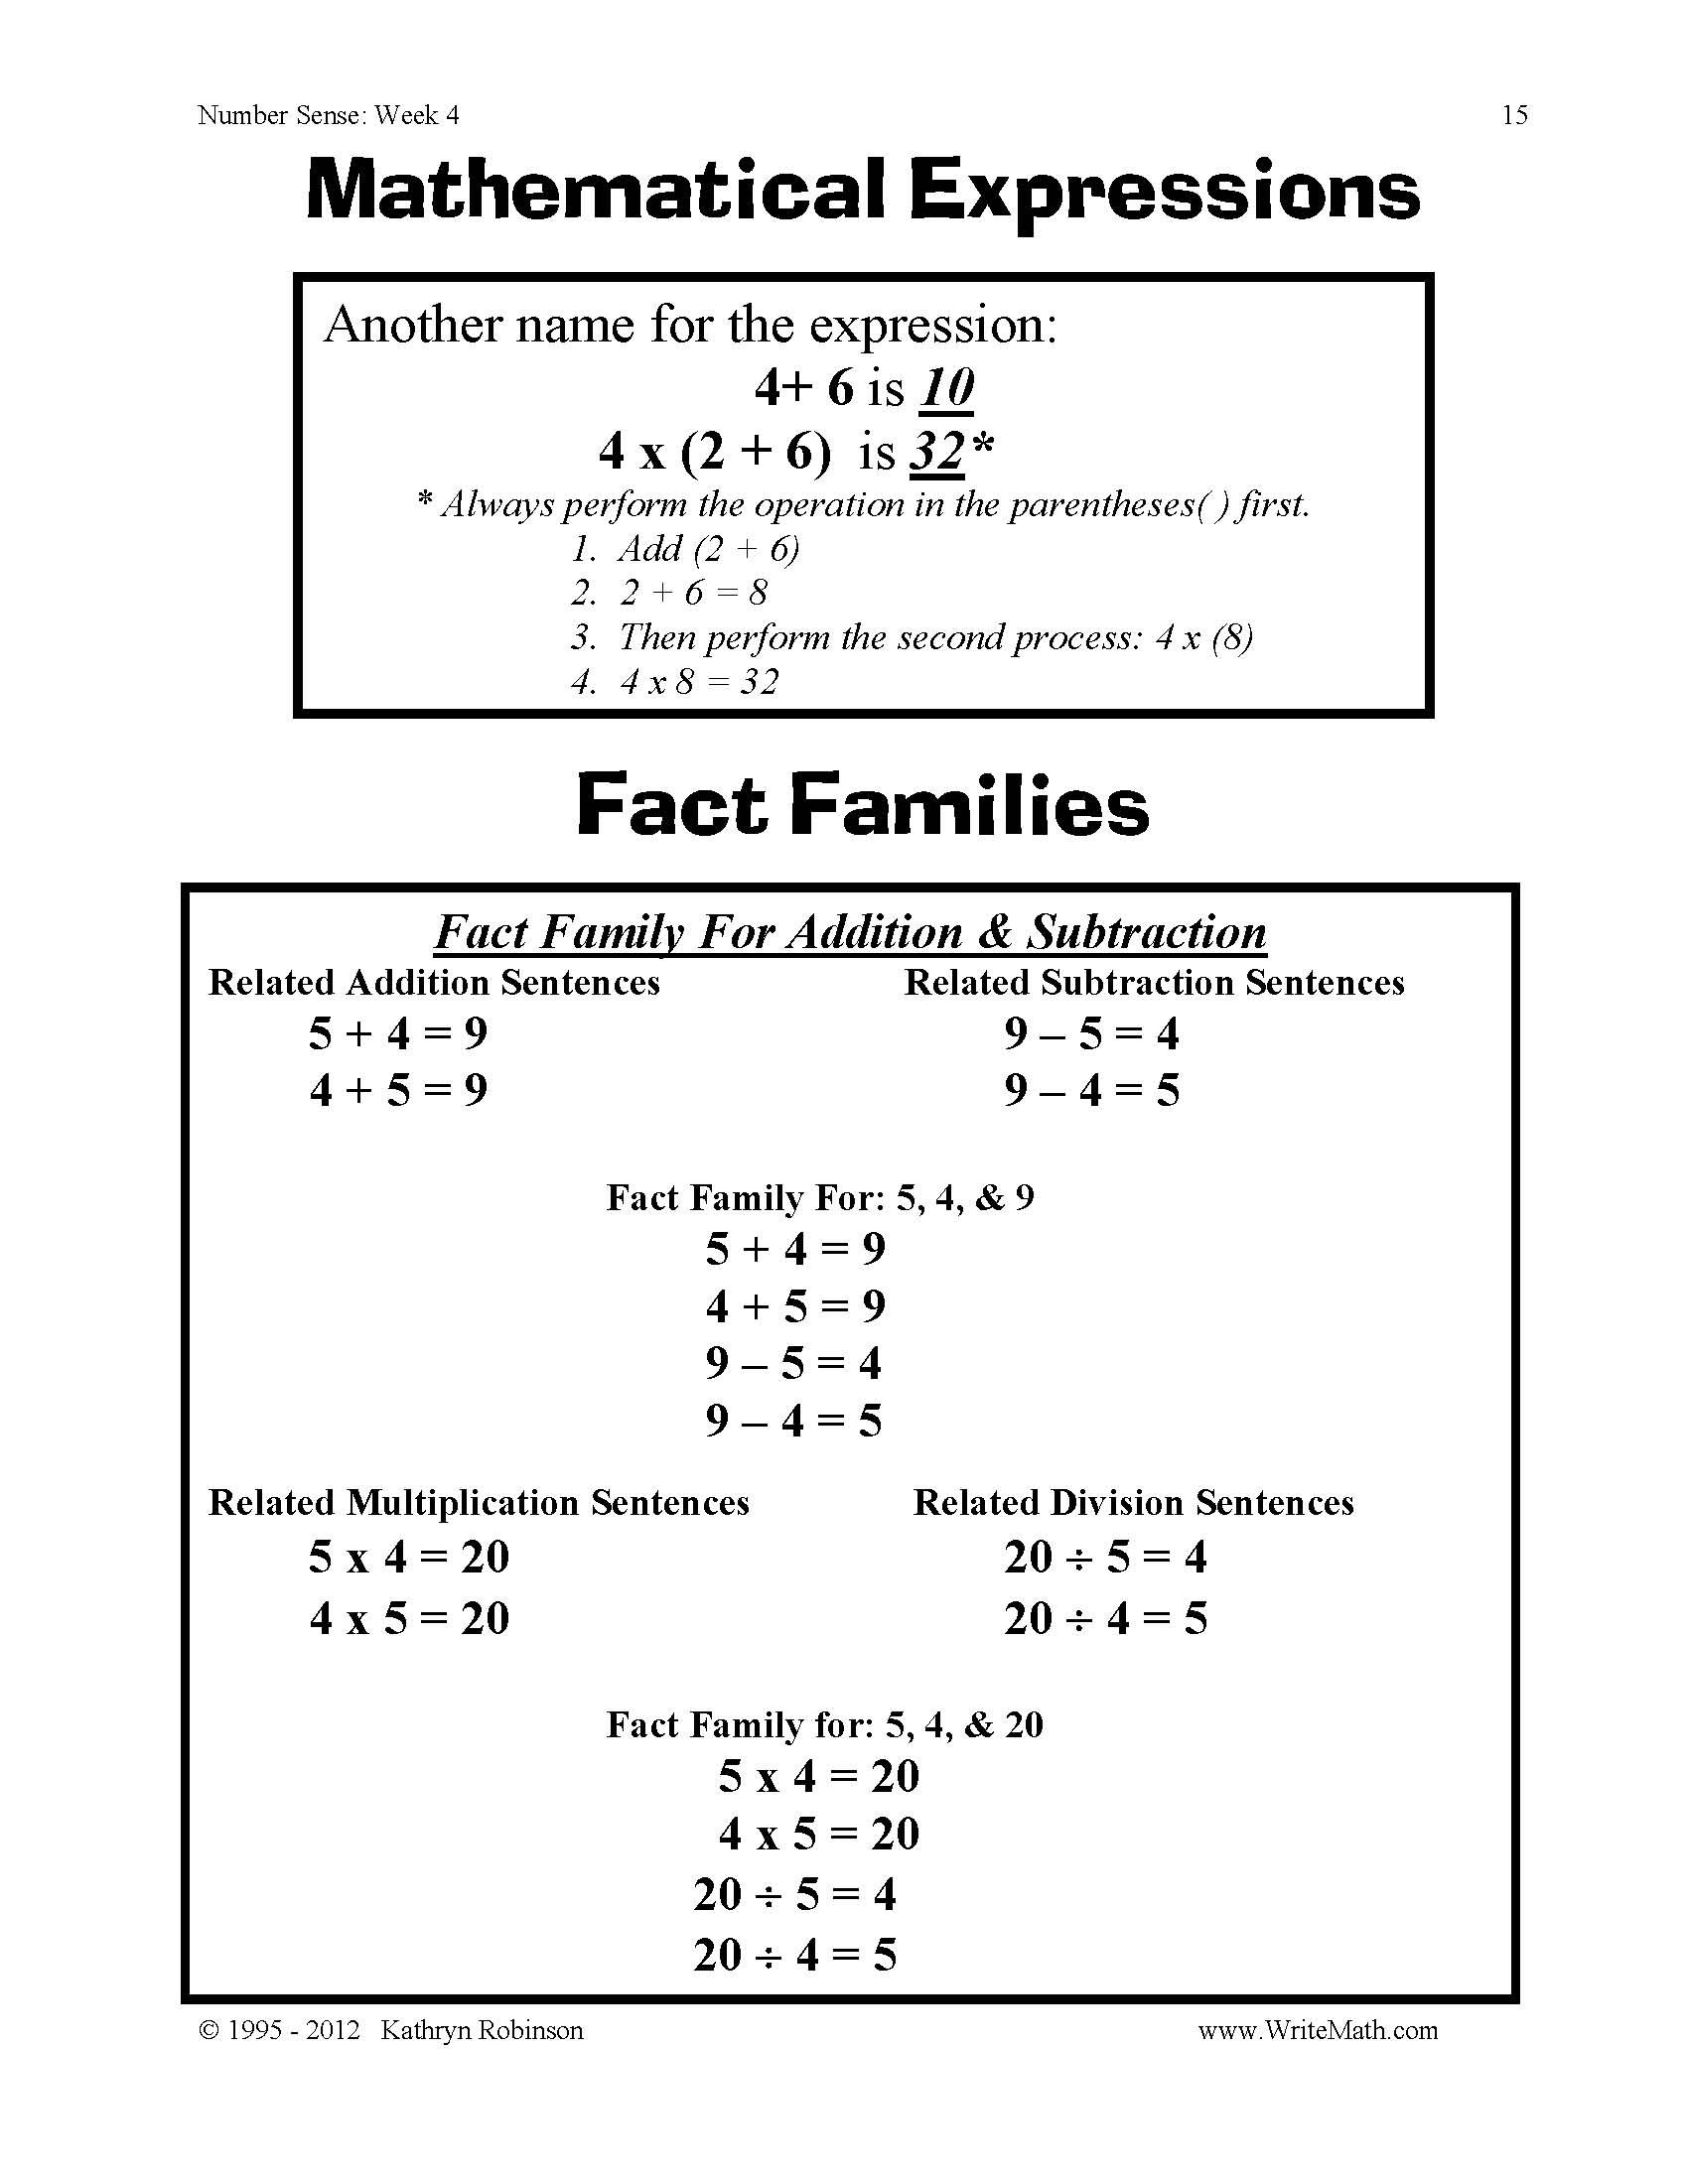 besides 5th grade activity sheets   Erkal jonathandedecker also Evaluating Numerical Expressions Worksheet 5th Grade Math Worksheets as well Math Worksheet For 5Th Grade Worksheets for all   Download and Share also 5th Grade Math Worksheets   Fifth Grade Math Worksheets   education moreover  besides Decimal Math Worksheets Addition in addition Mental Math 5th Grade moreover Mental Math 5th Grade in addition 5Th Grade Multiplication Worksheet Free Worksheets Liry moreover 5th grade math worksheets pdf  grade 5 maths exam papers moreover  also 4th grade  5th grade Math Worksheets  Coordinate graphs   Greats moreover Free Worksheets Liry   Download and Print Worksheets   Free on together with Kid Multiplication 5th Grade Math Worksheets Facts  5th Grade Math besides Perimeter Worksheets. on math worksheets for 5th graders